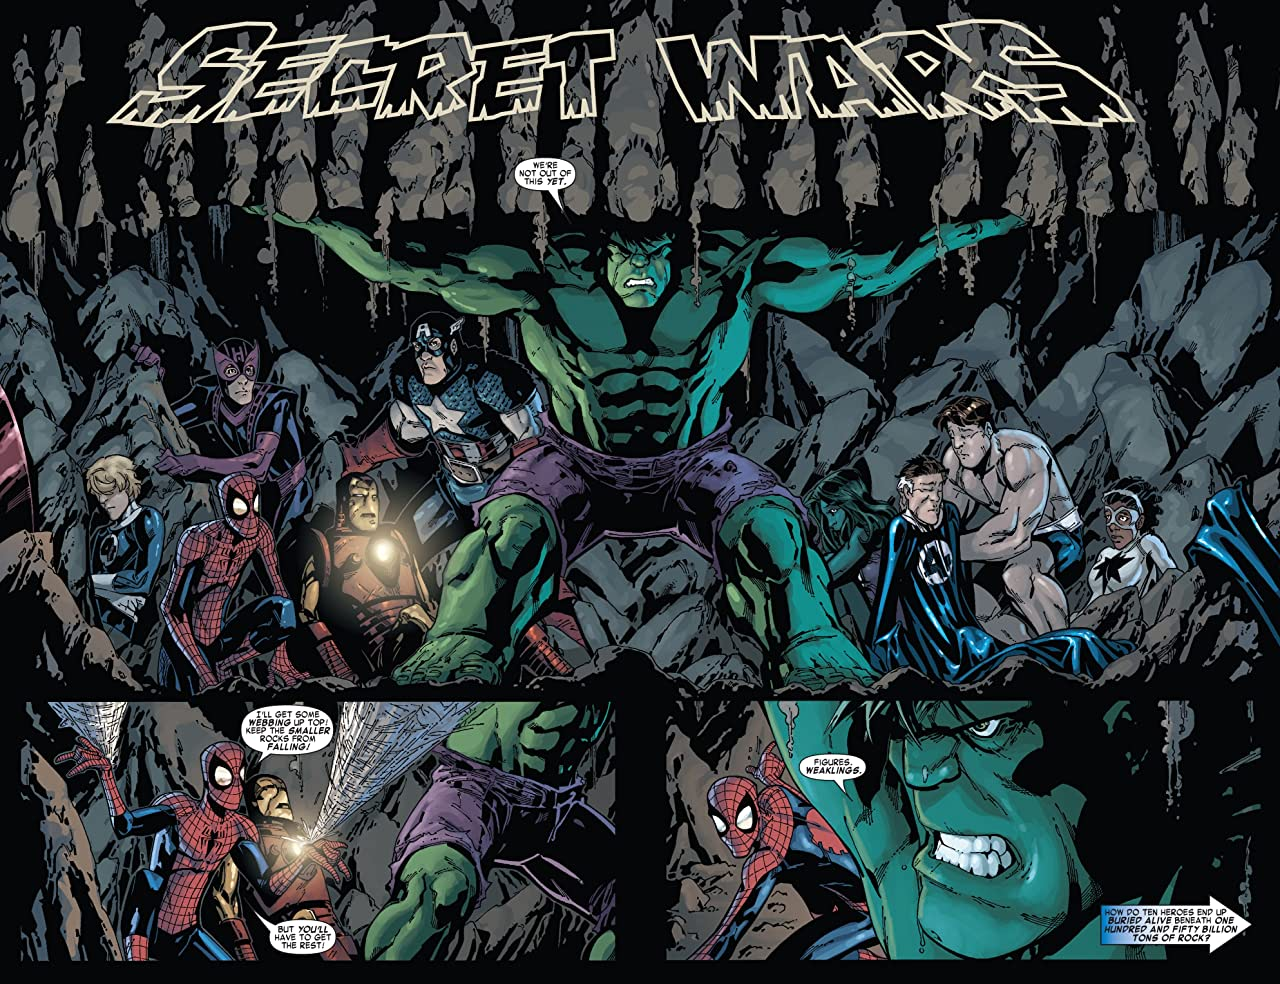 Spider-Man & The Secret Wars